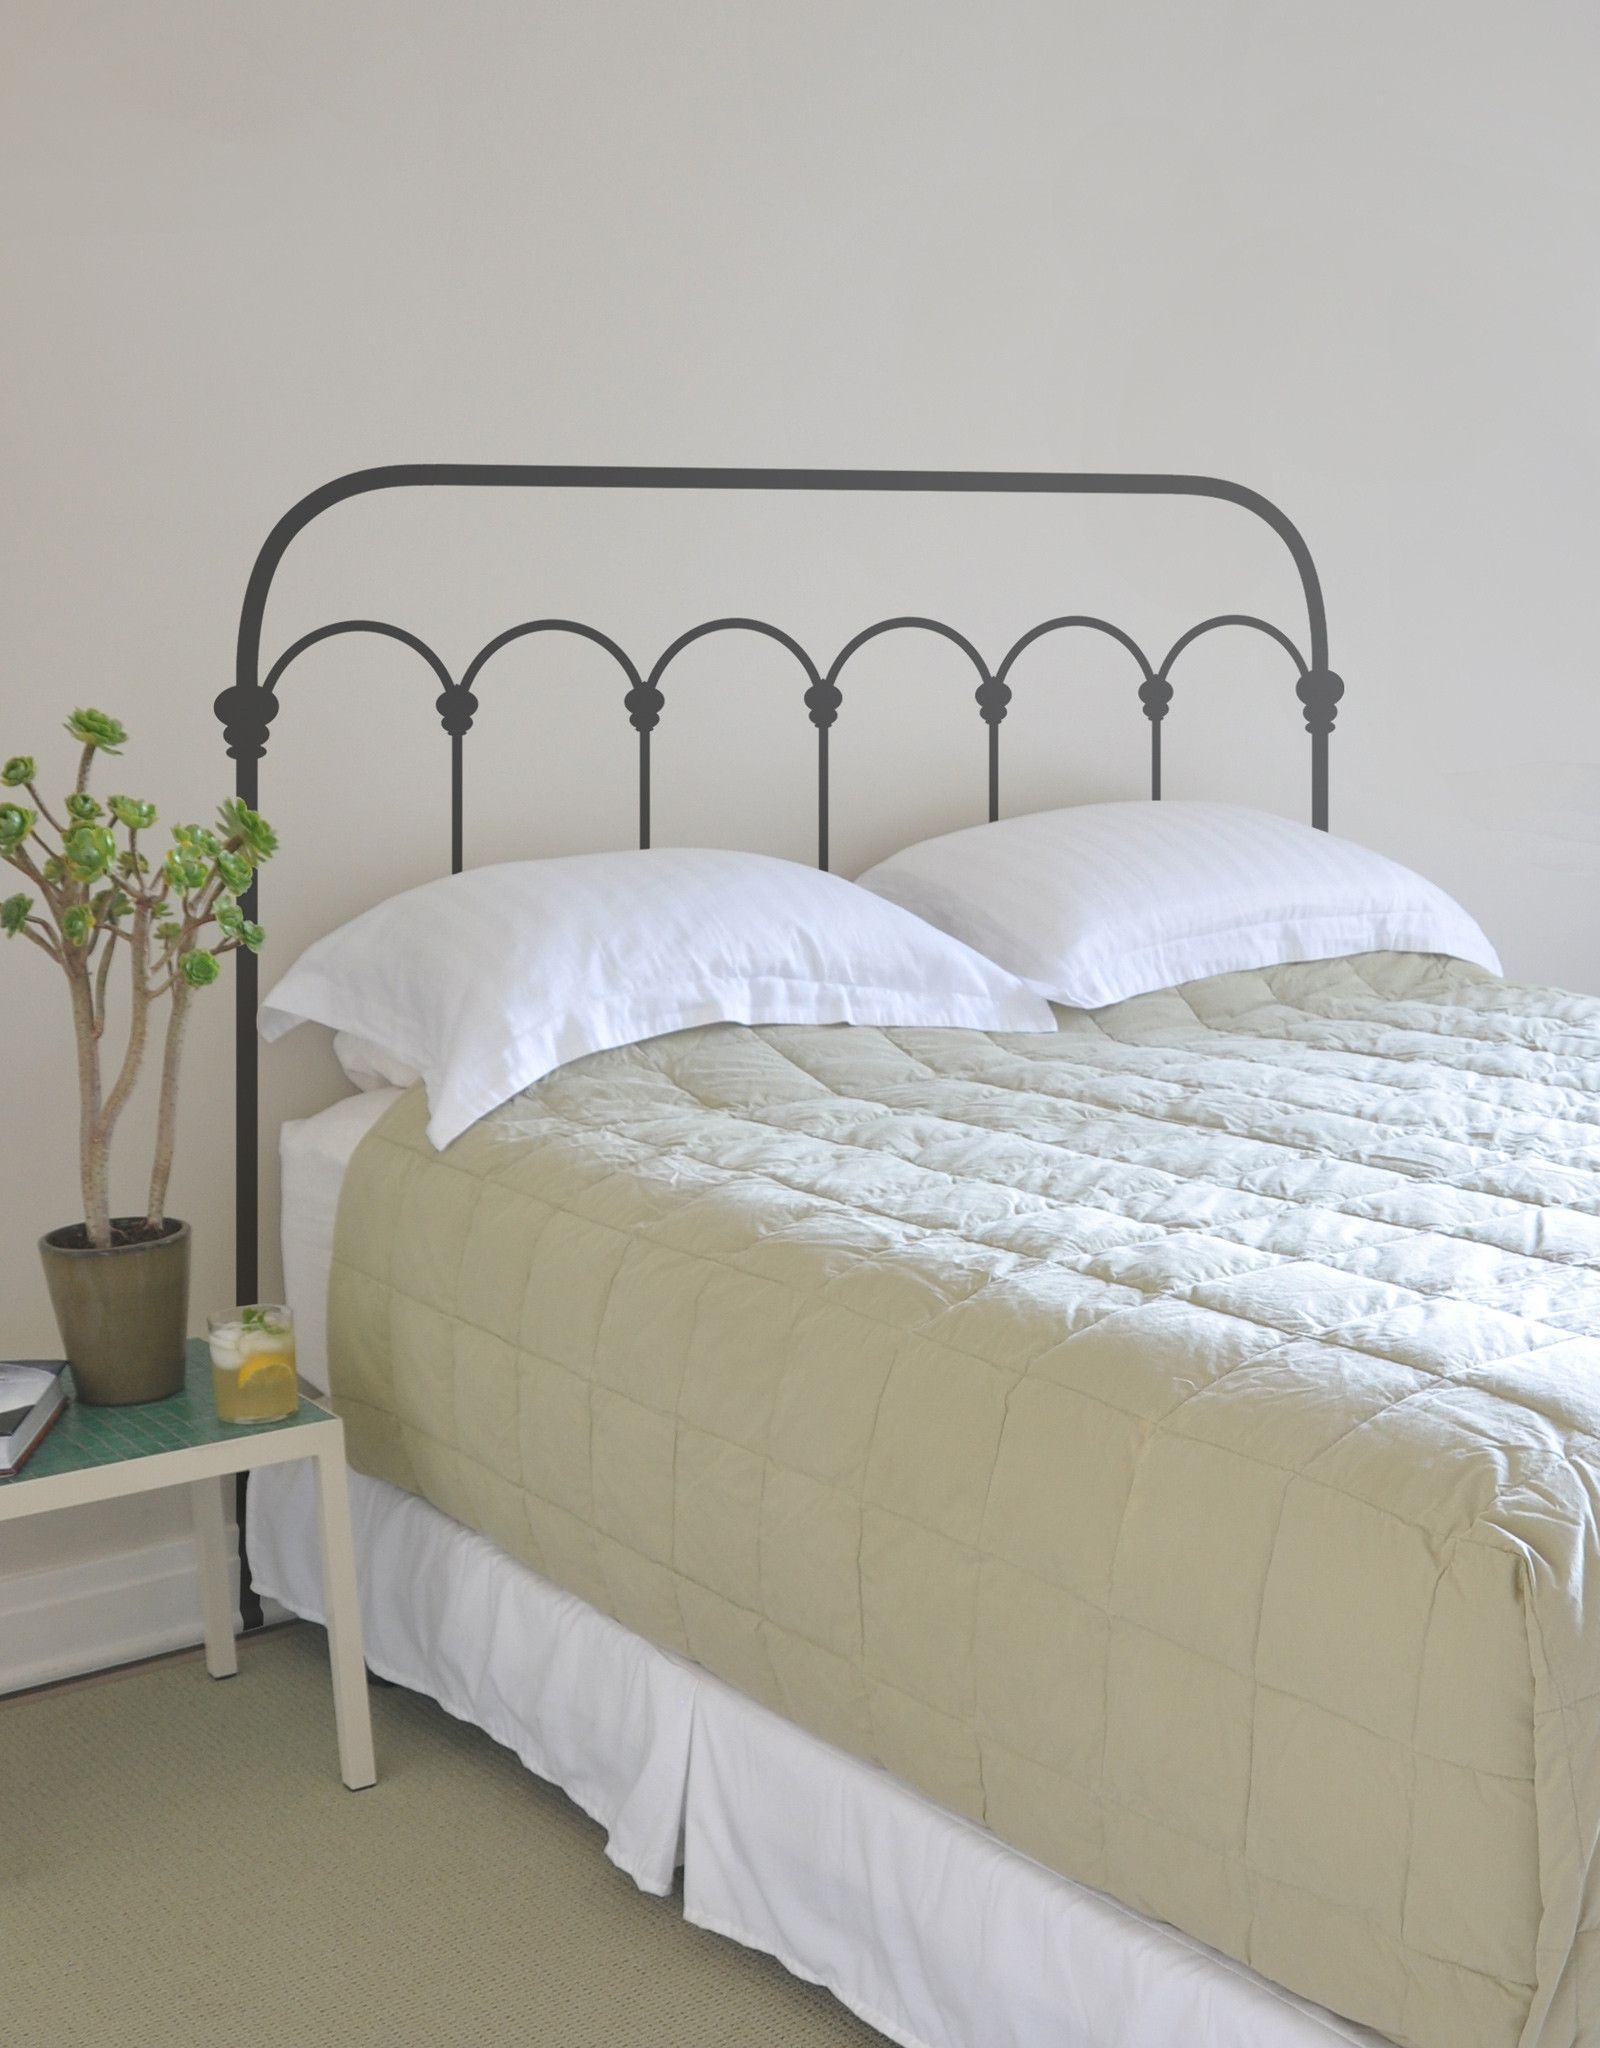 Wrought iron headboard by mina javid for blik wall decals is for the minimalist who wants something more than the bare minimum available in twin queen and